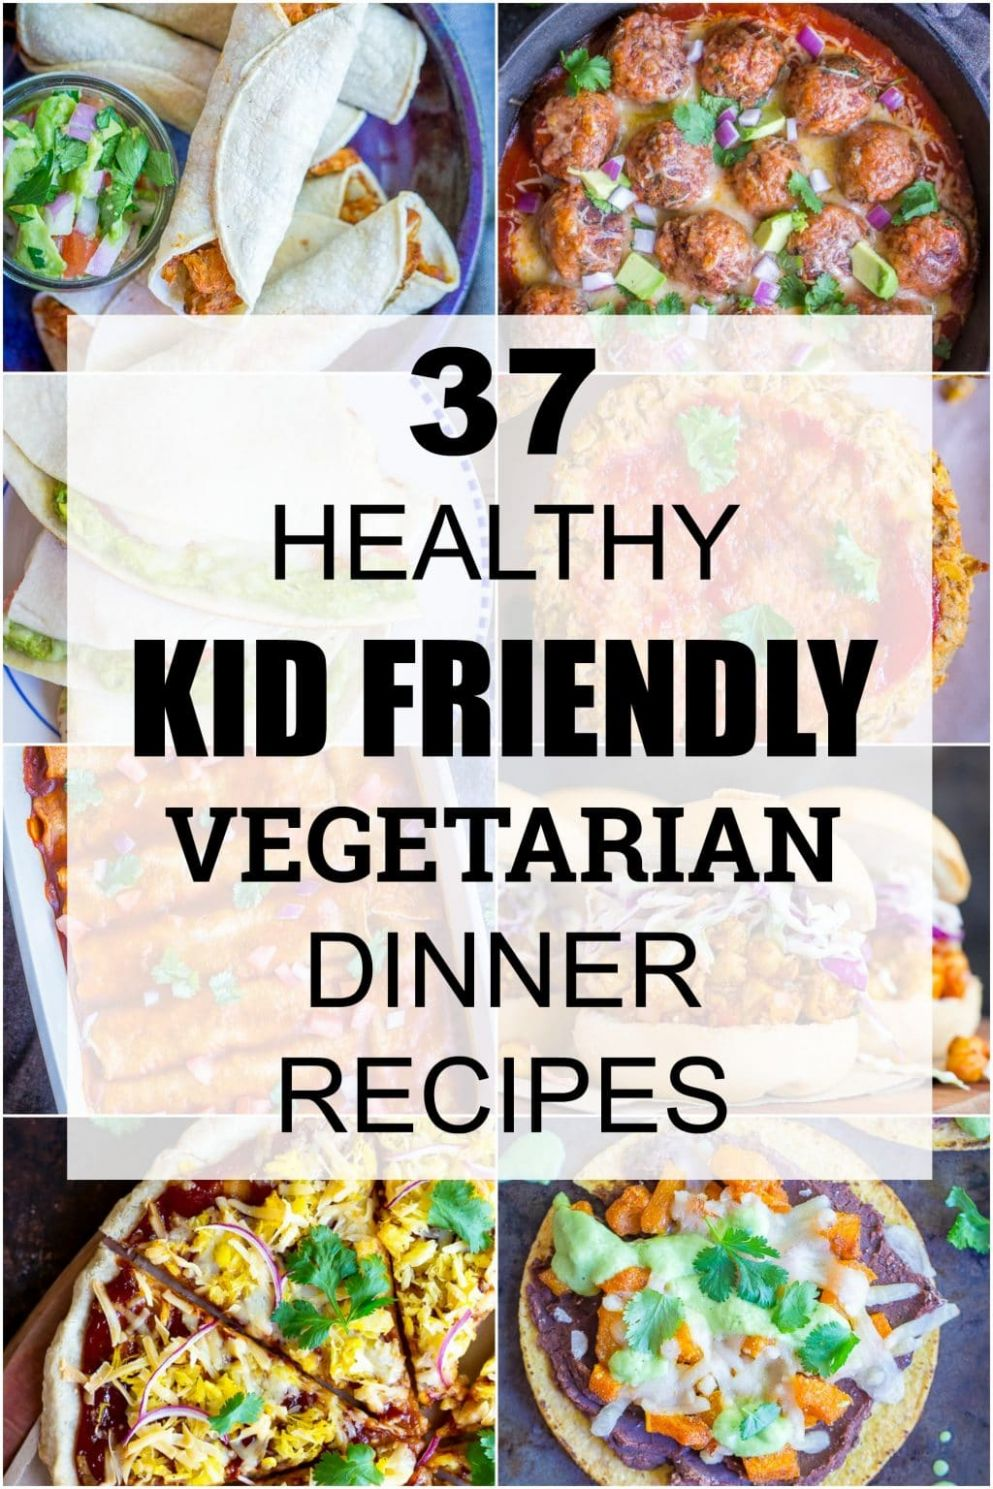 11 Healthy Kid Friendly Vegetarian Dinner Recipes - She Likes Food - Vegetable Recipes Toddlers